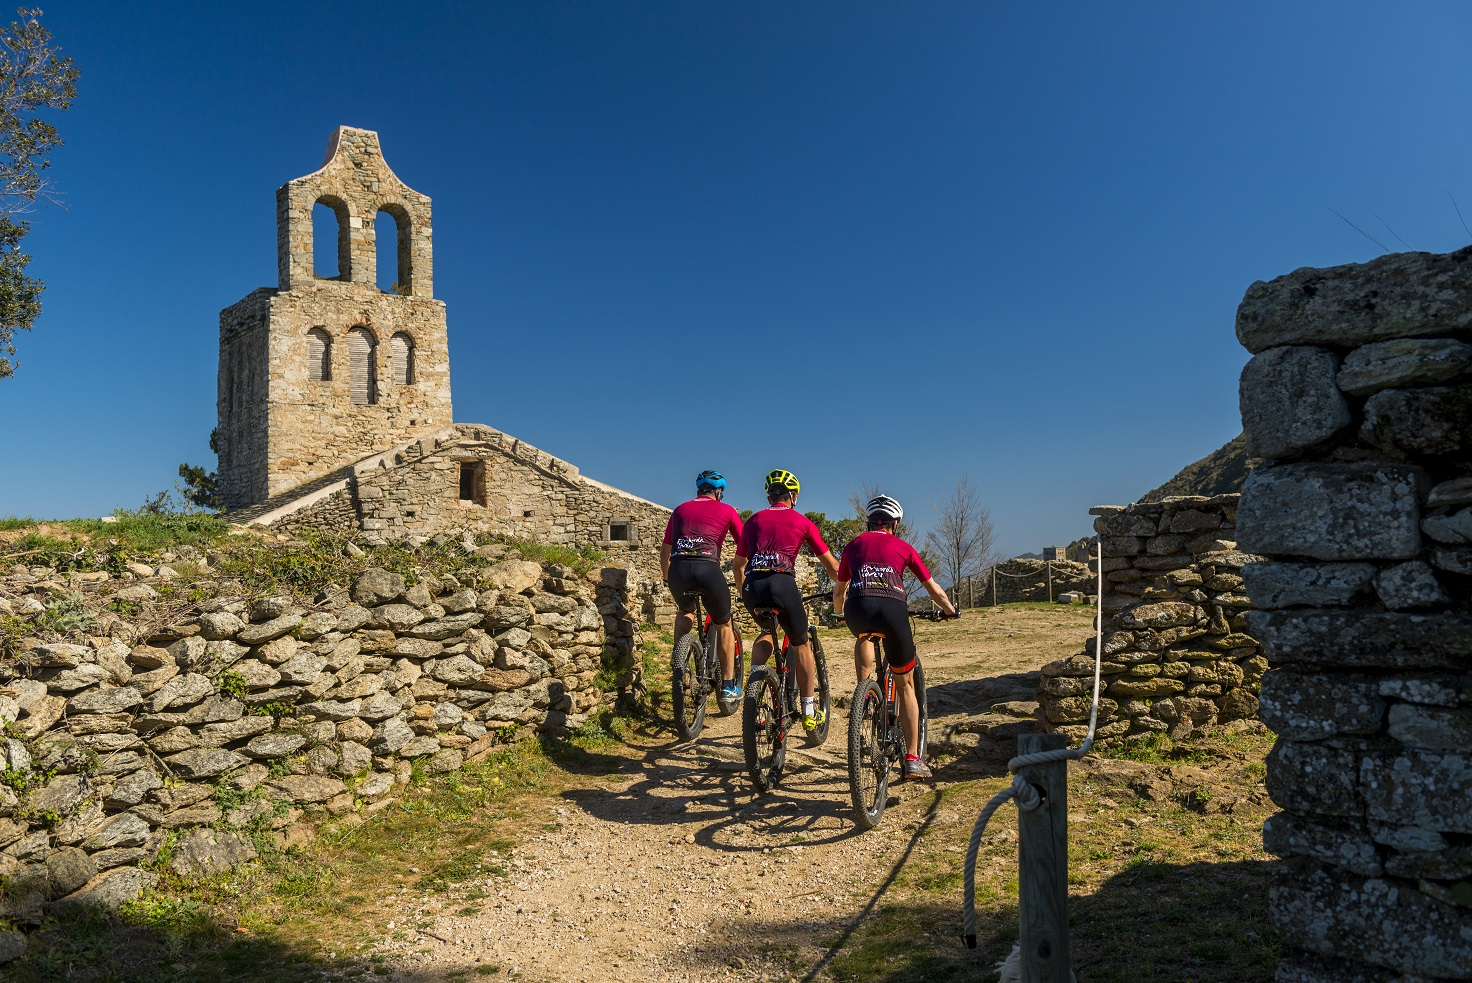 3 cyclists in the mountain